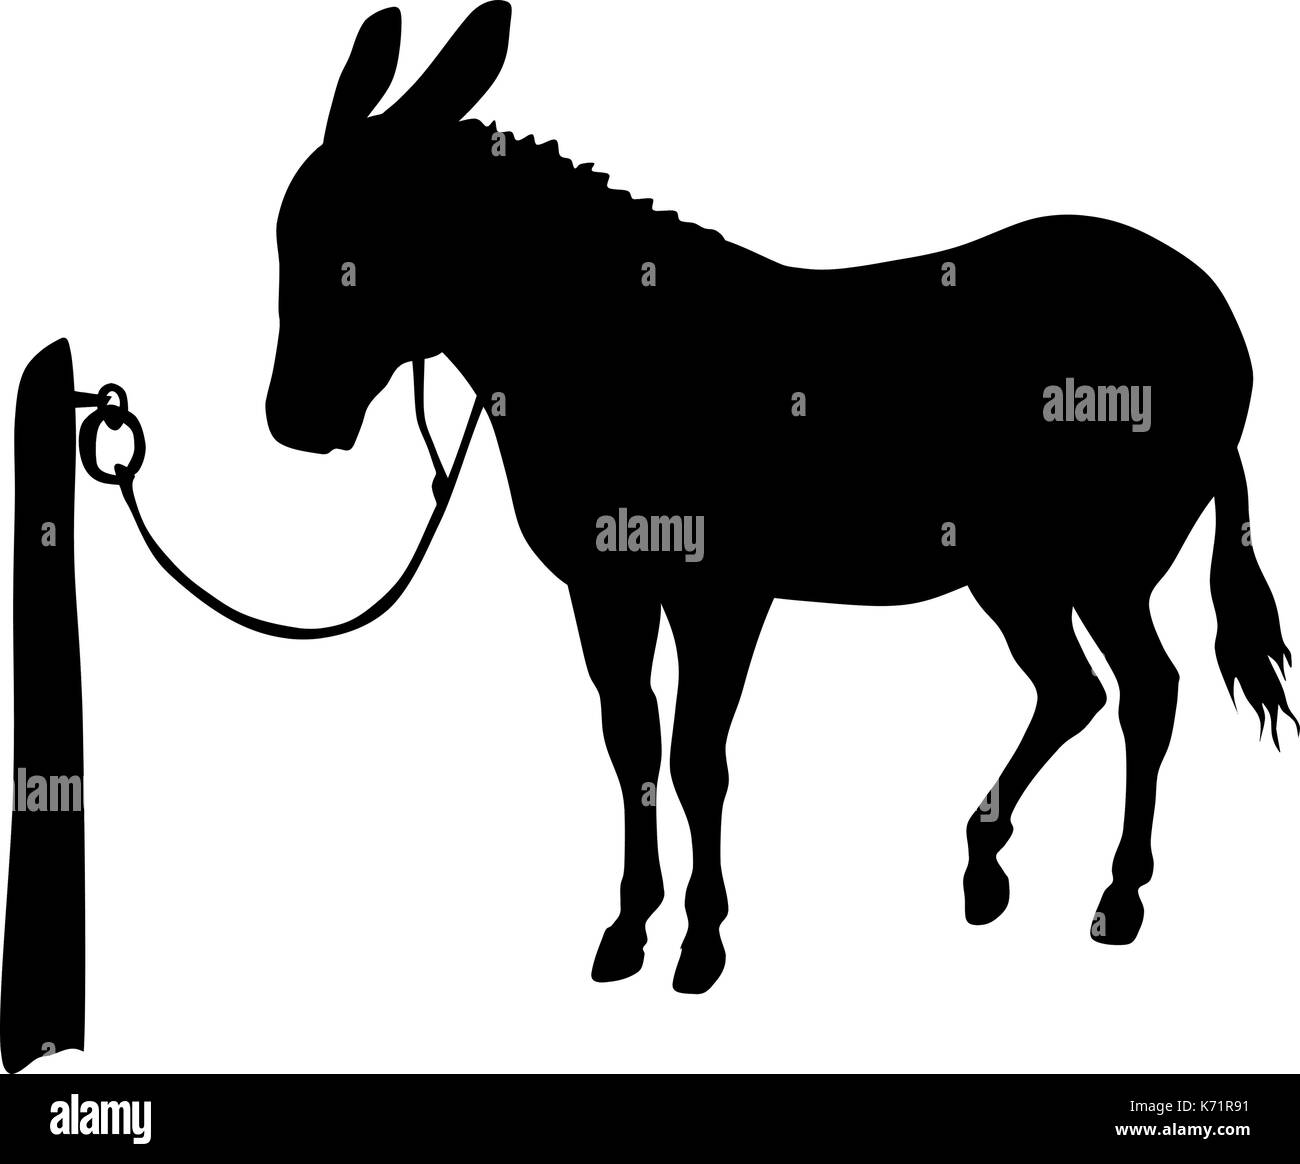 vector silhouette of donkey - Stock Image